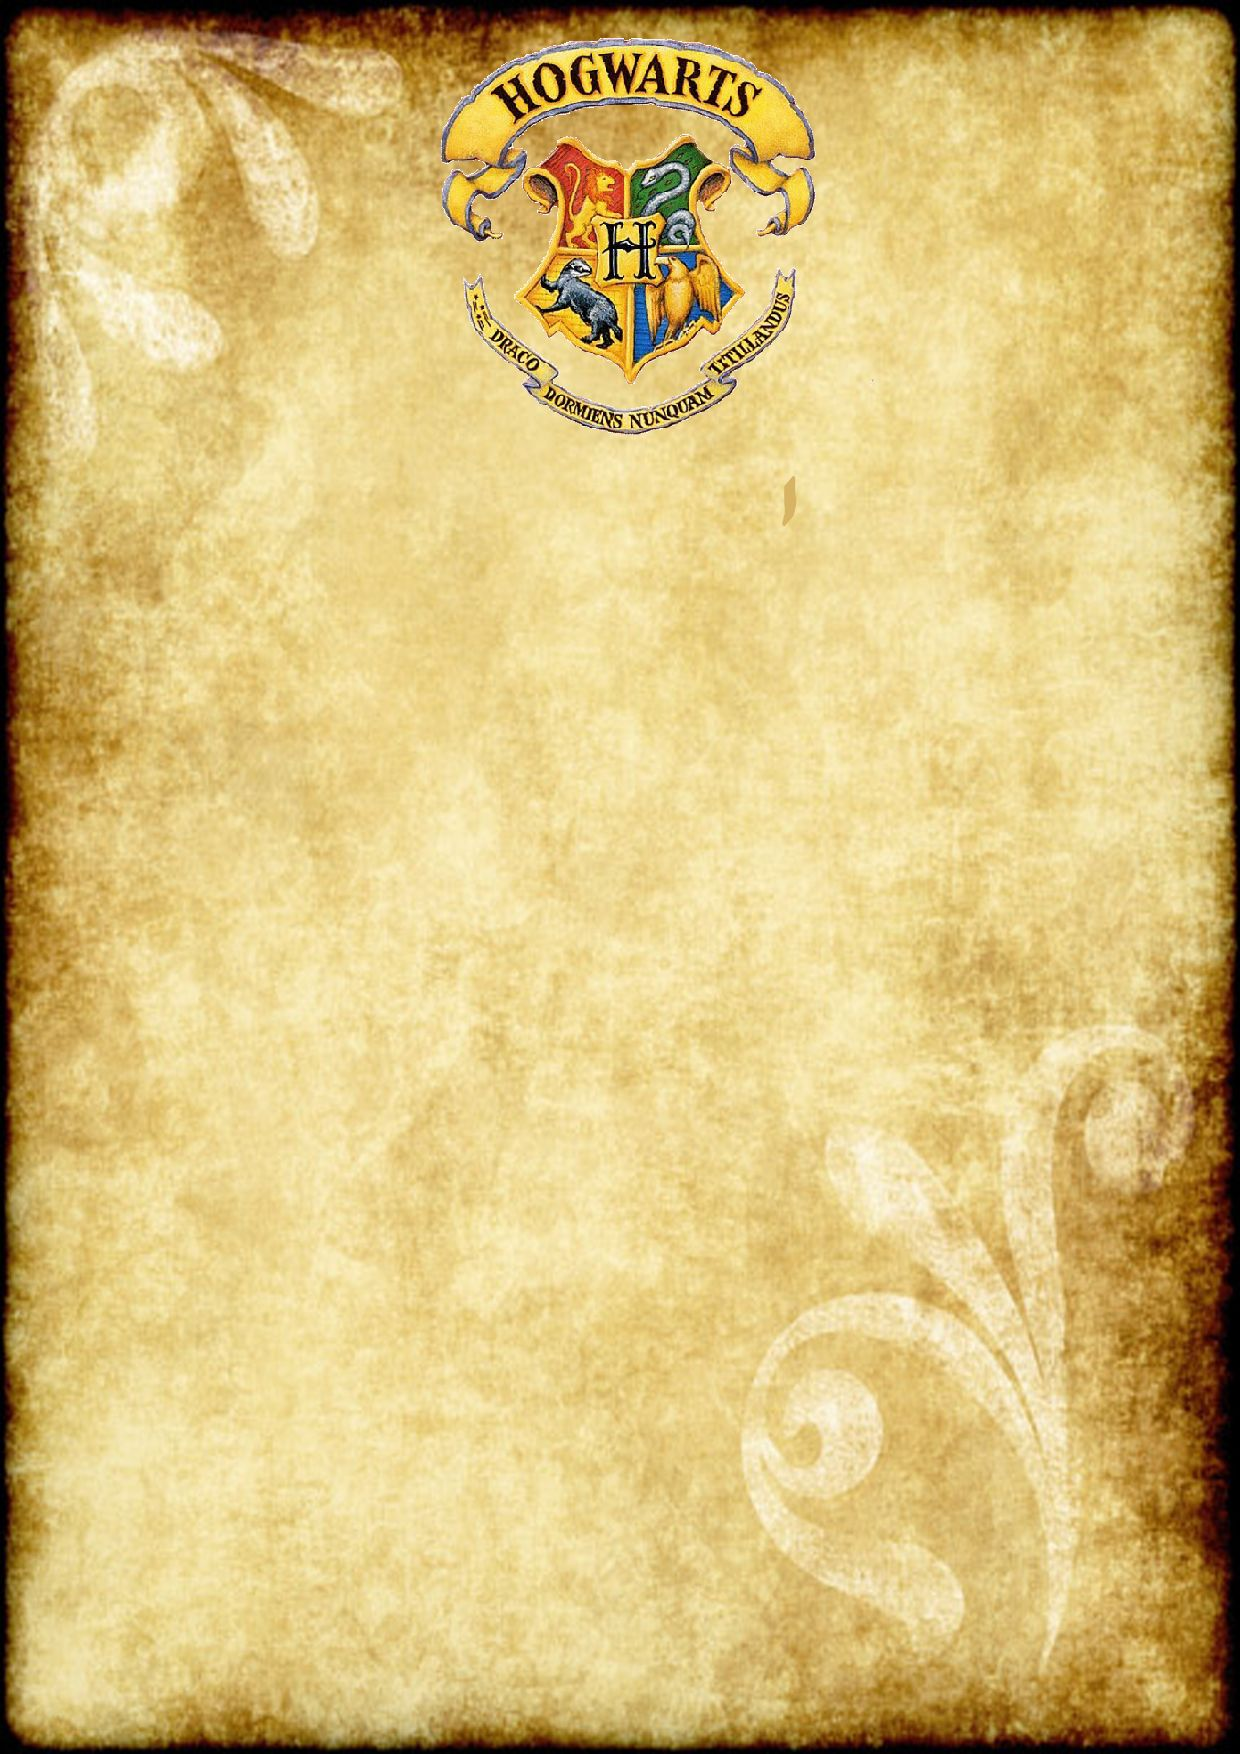 Free Printable Harry Potter Party Blank Parchment A4 Size More Christmas Art